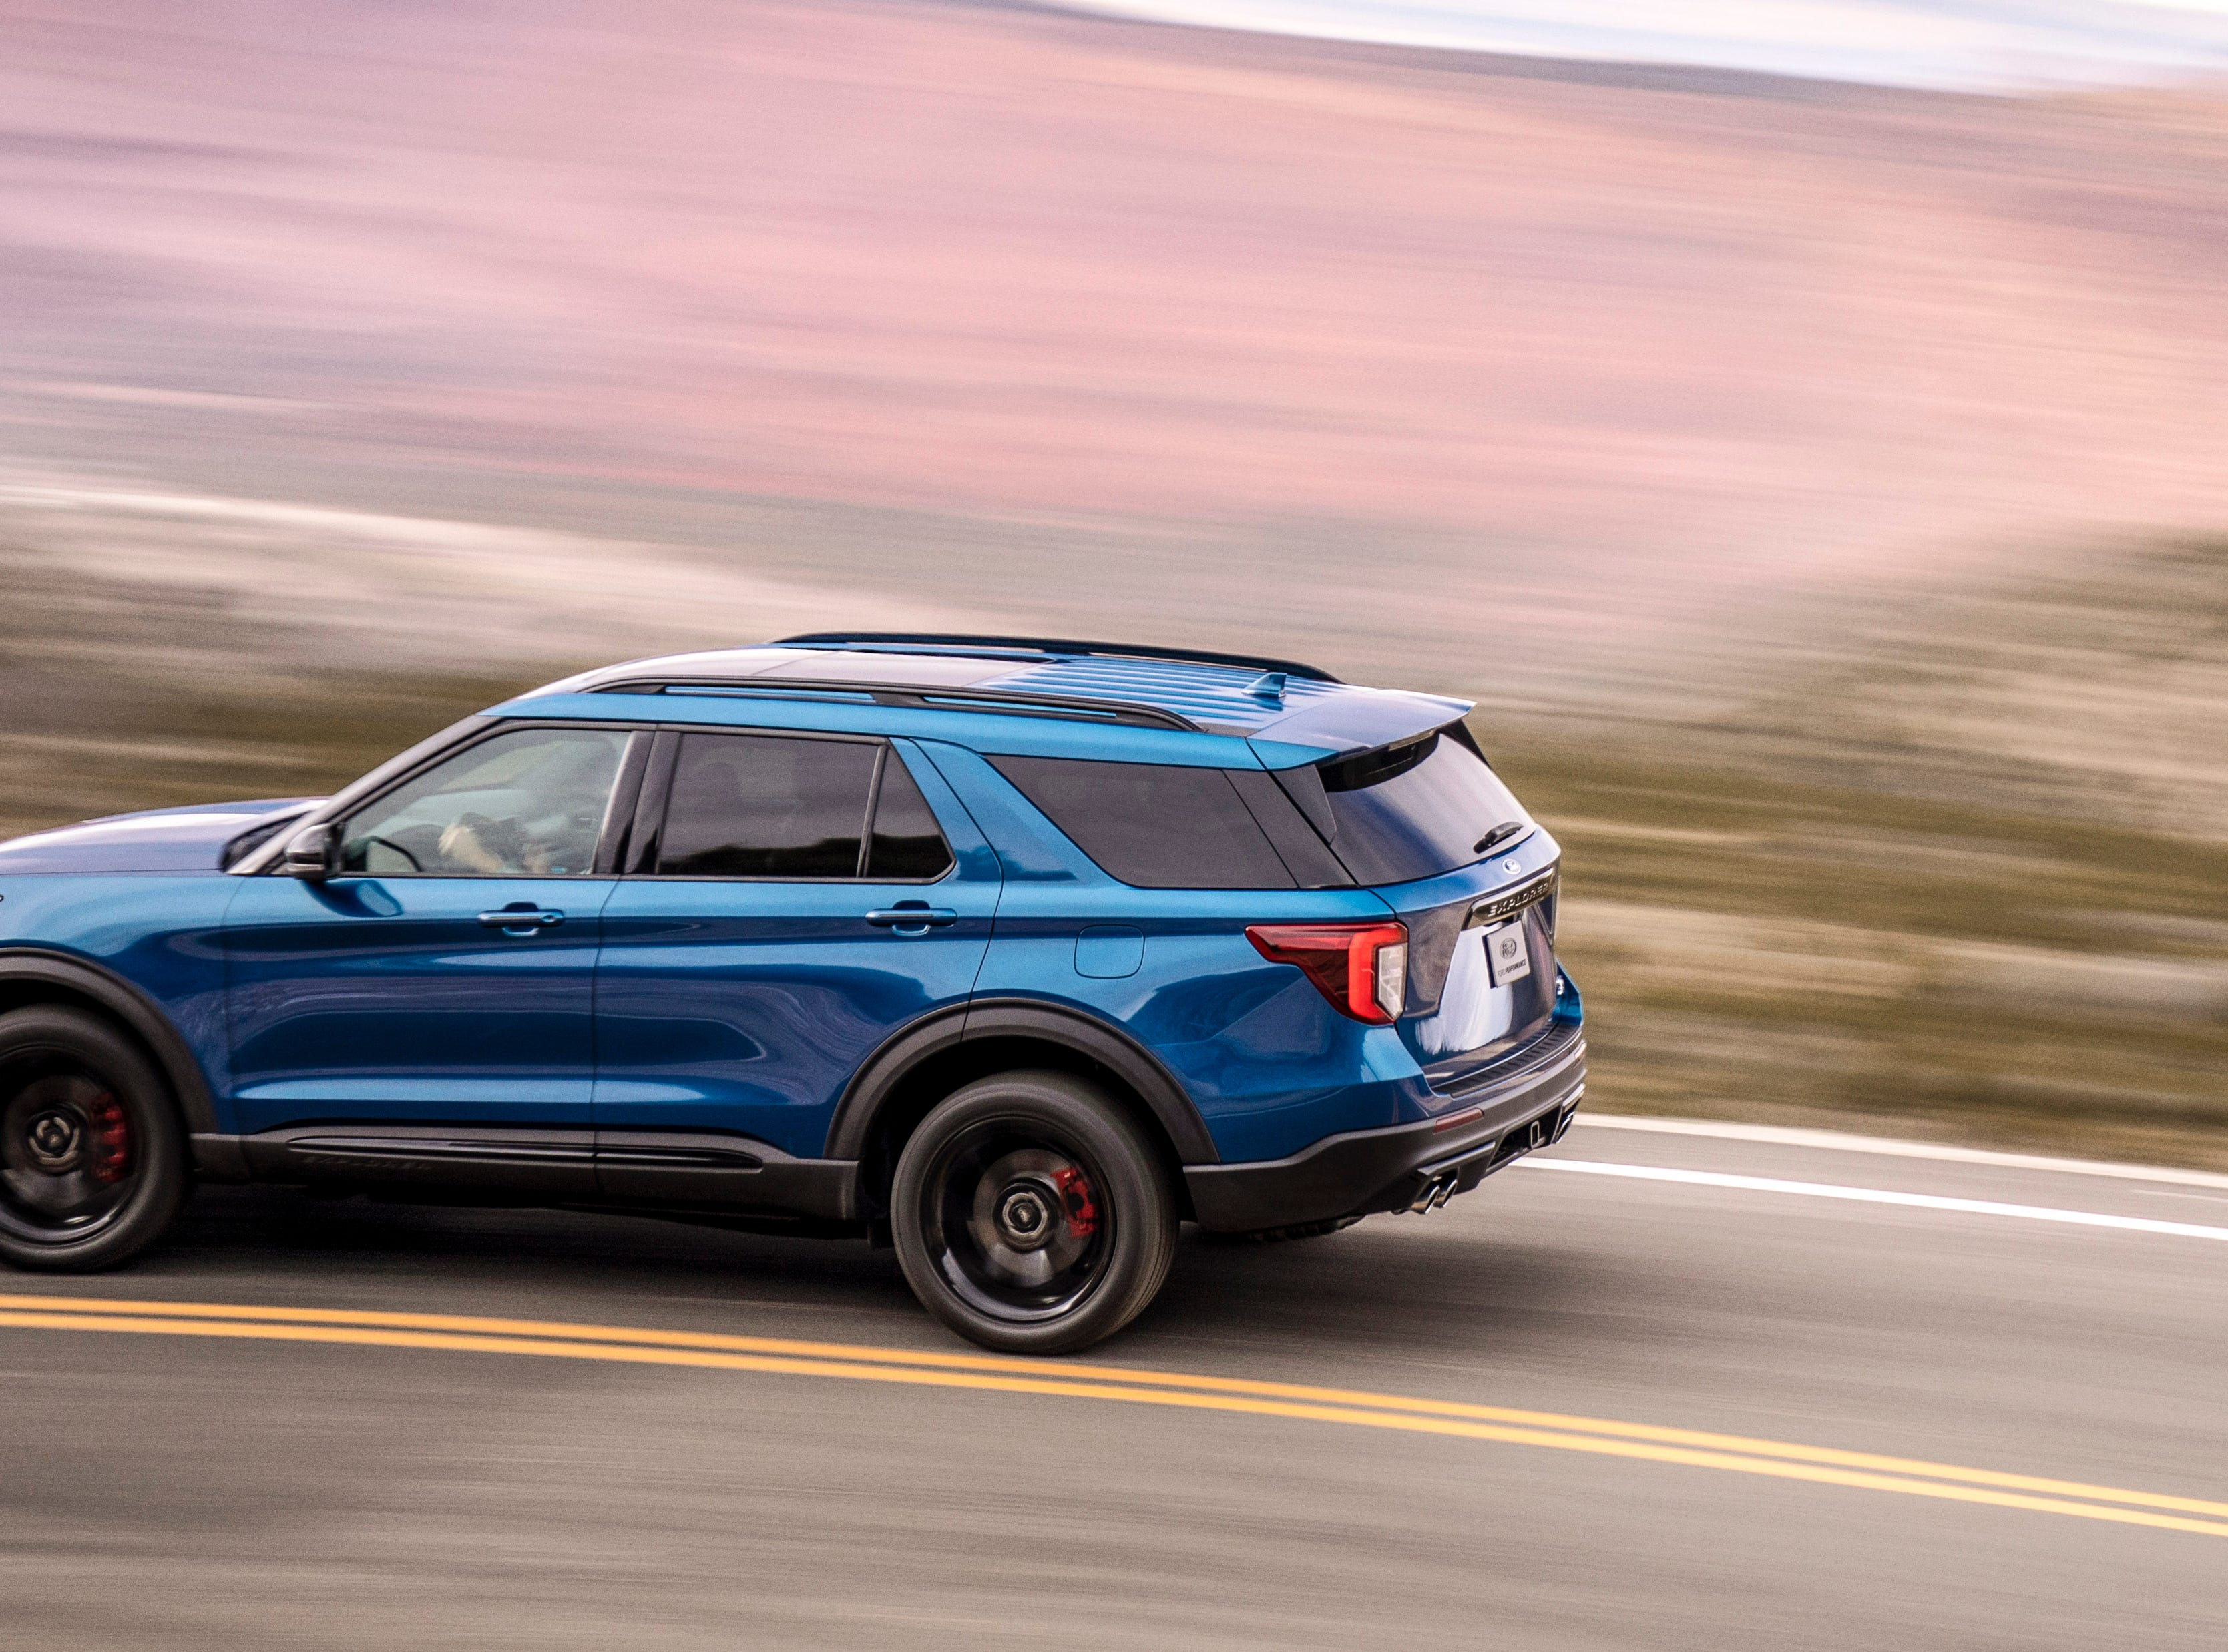 """""""Explorer ST uses a specially tuned 3.0-liter EcoBoost® engine projected to achieve 400 horsepower and 415 lb.-ft. of torque. A top speed target for track drivers stands at 143 mph."""""""